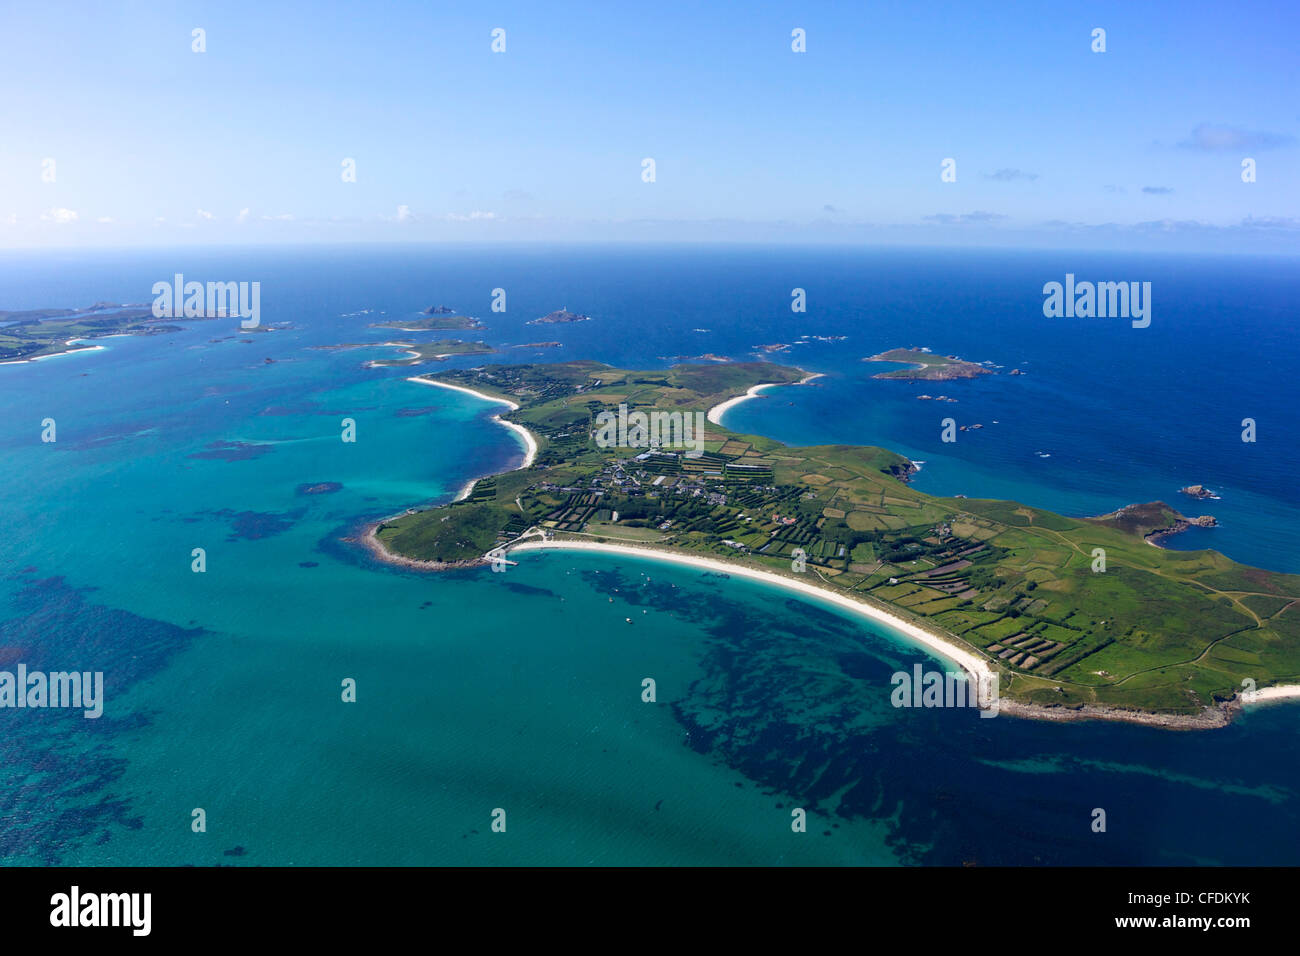 AerIal photo of St. Martin's island, Isles of Scilly, England, United Kingdom, Europe - Stock Image